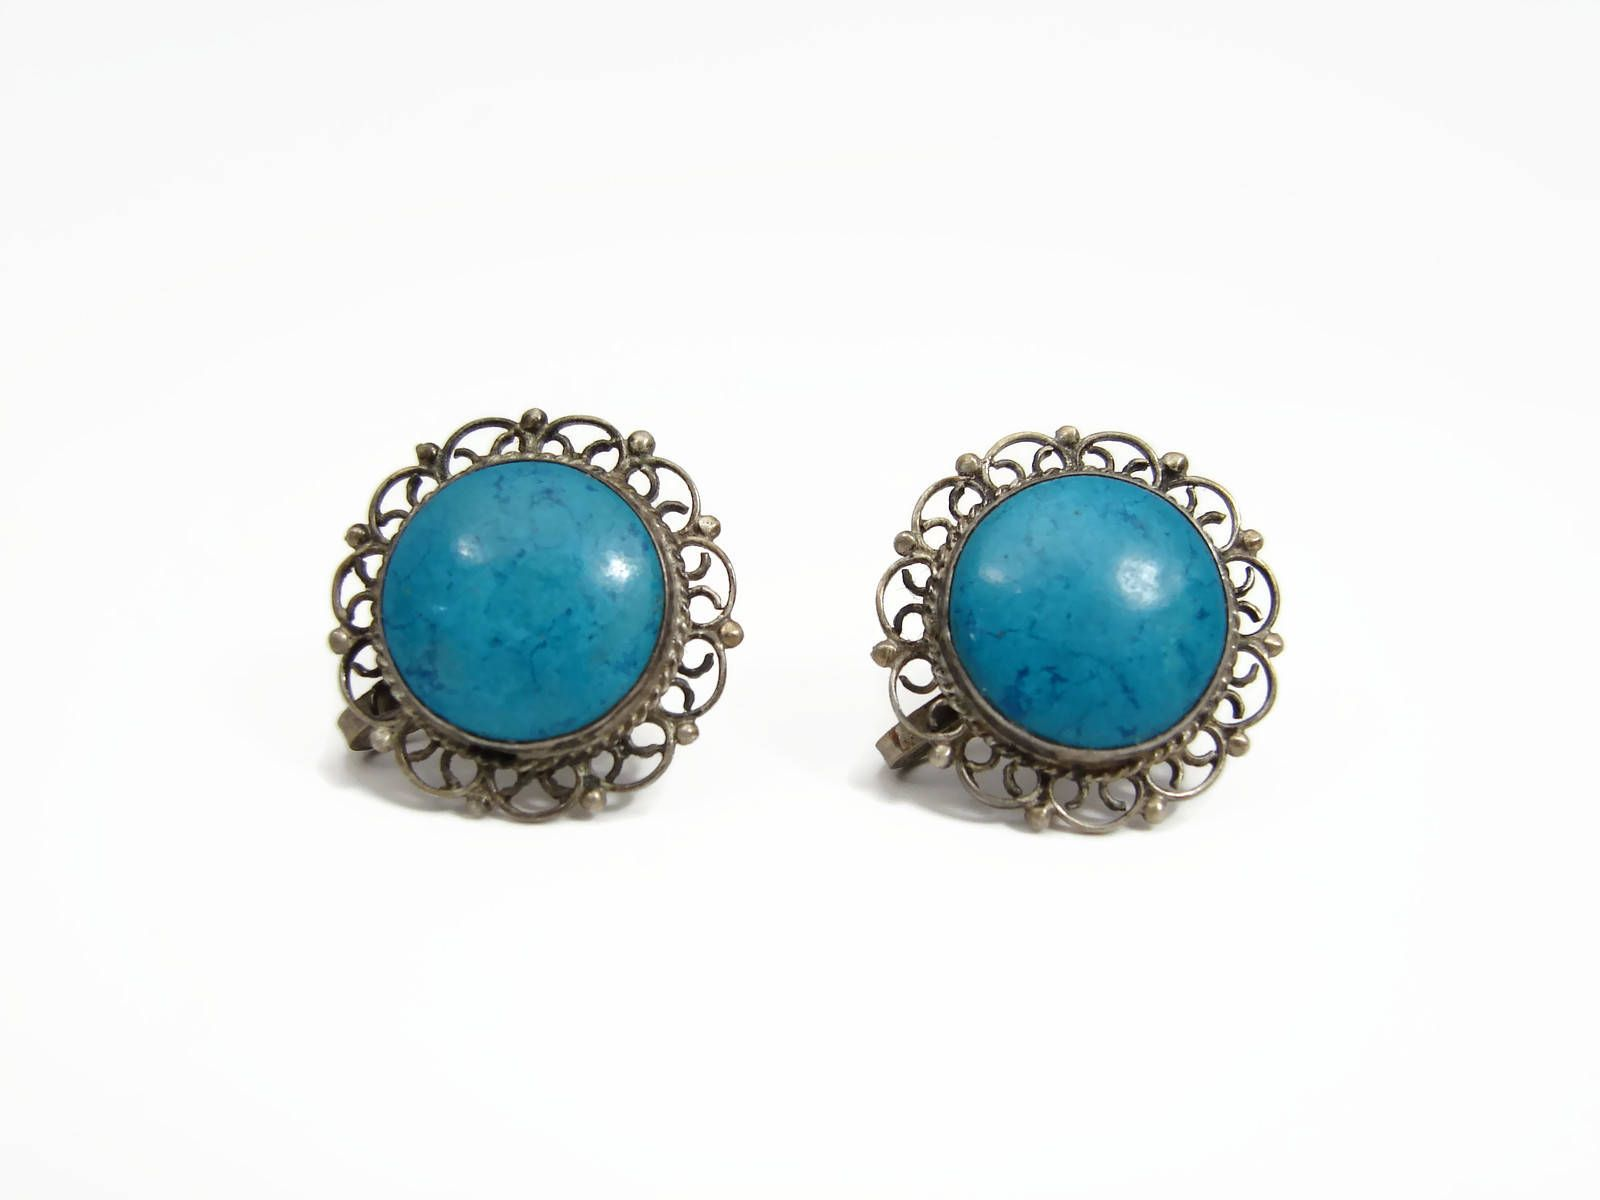 Vintage Sterling Mexican Turquoise Earrings Https Vintagegemz Listing